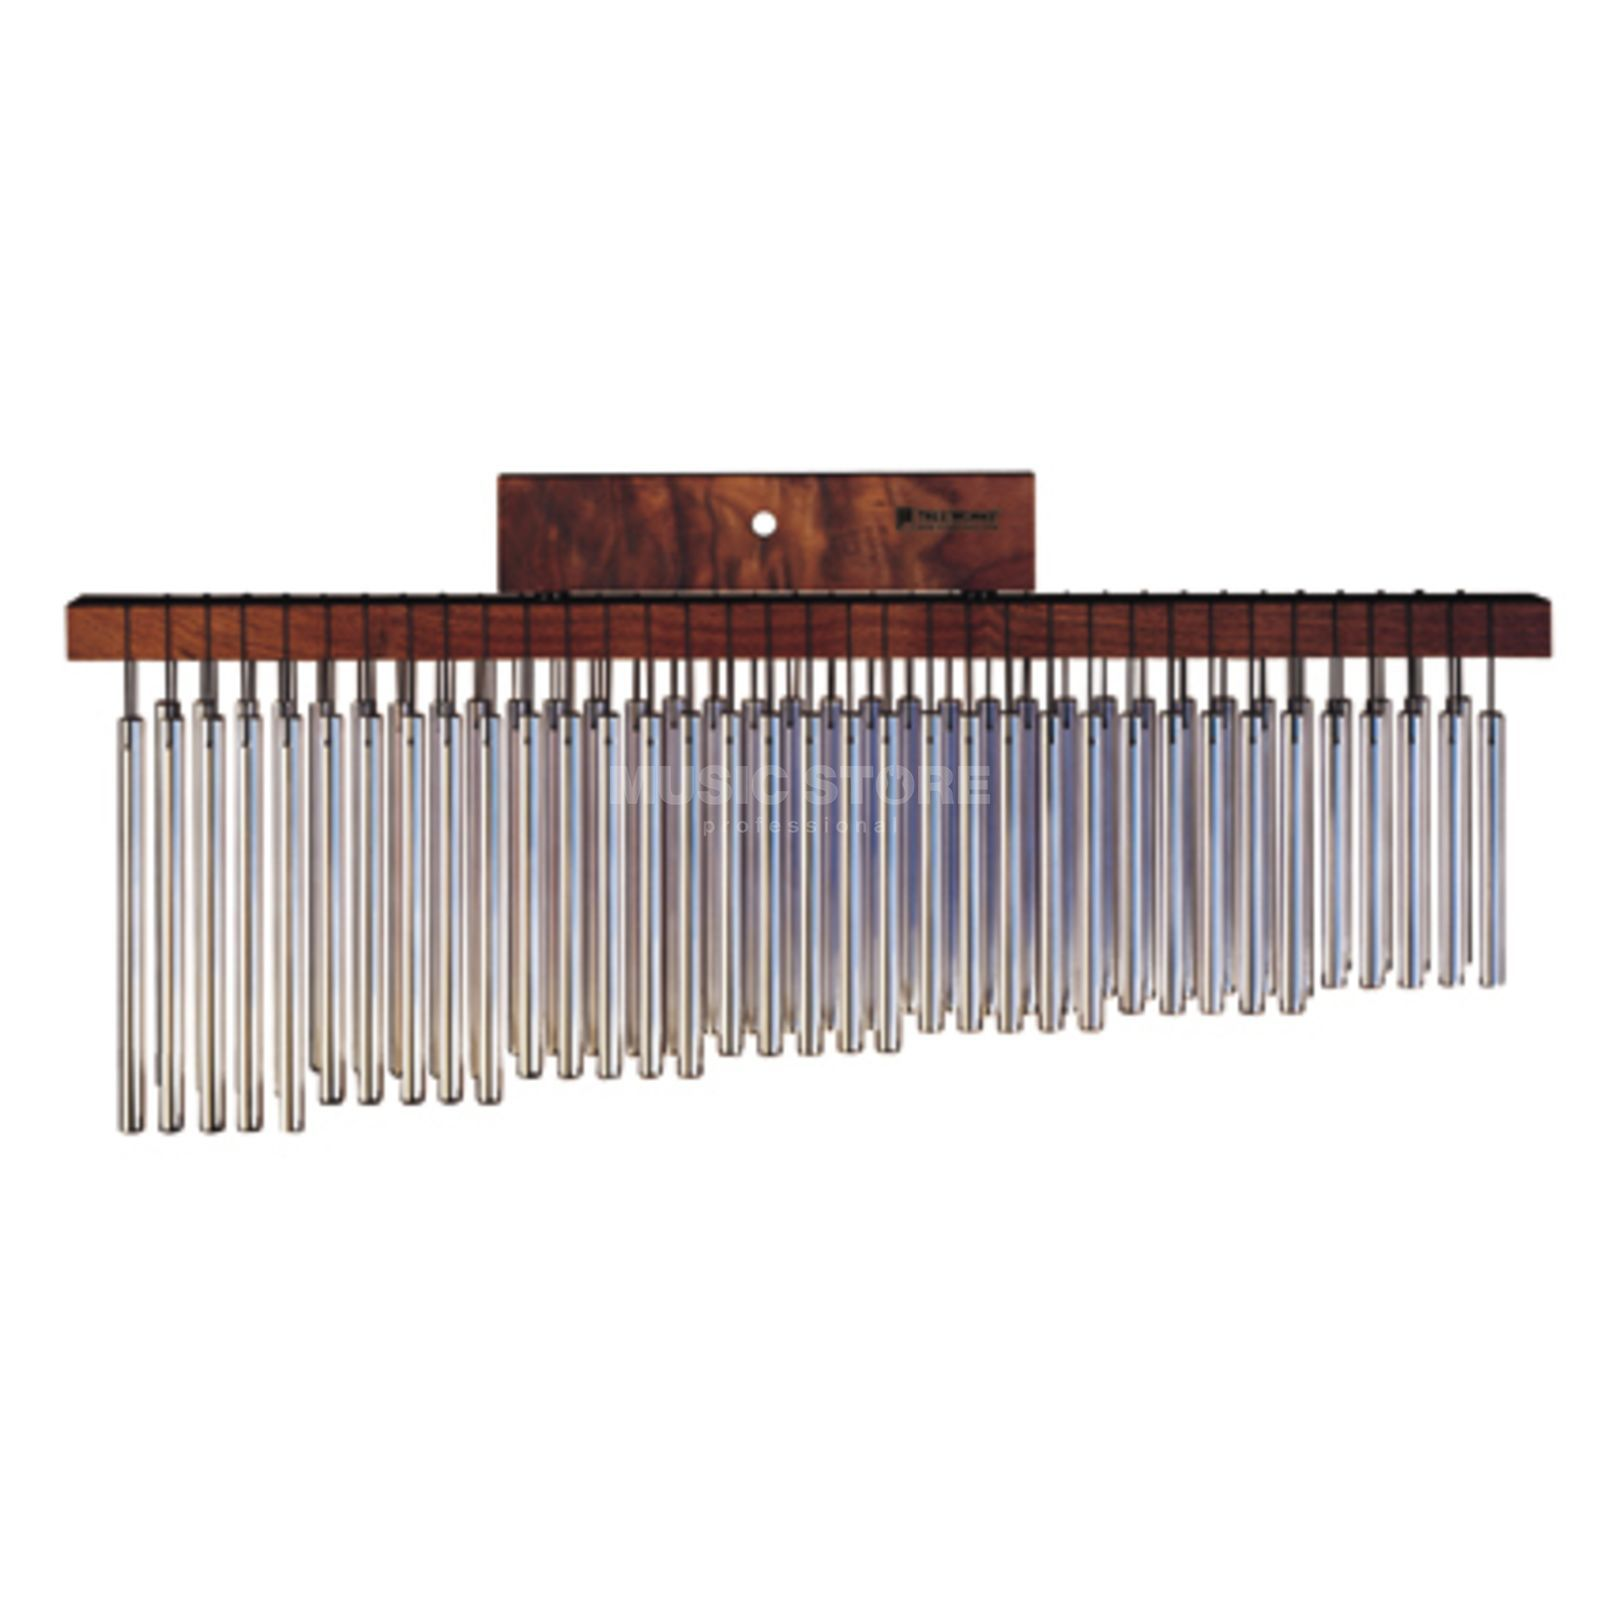 TreeWorks ZenTree Chimes TREzen, 69 Bars, Double Row Product Image